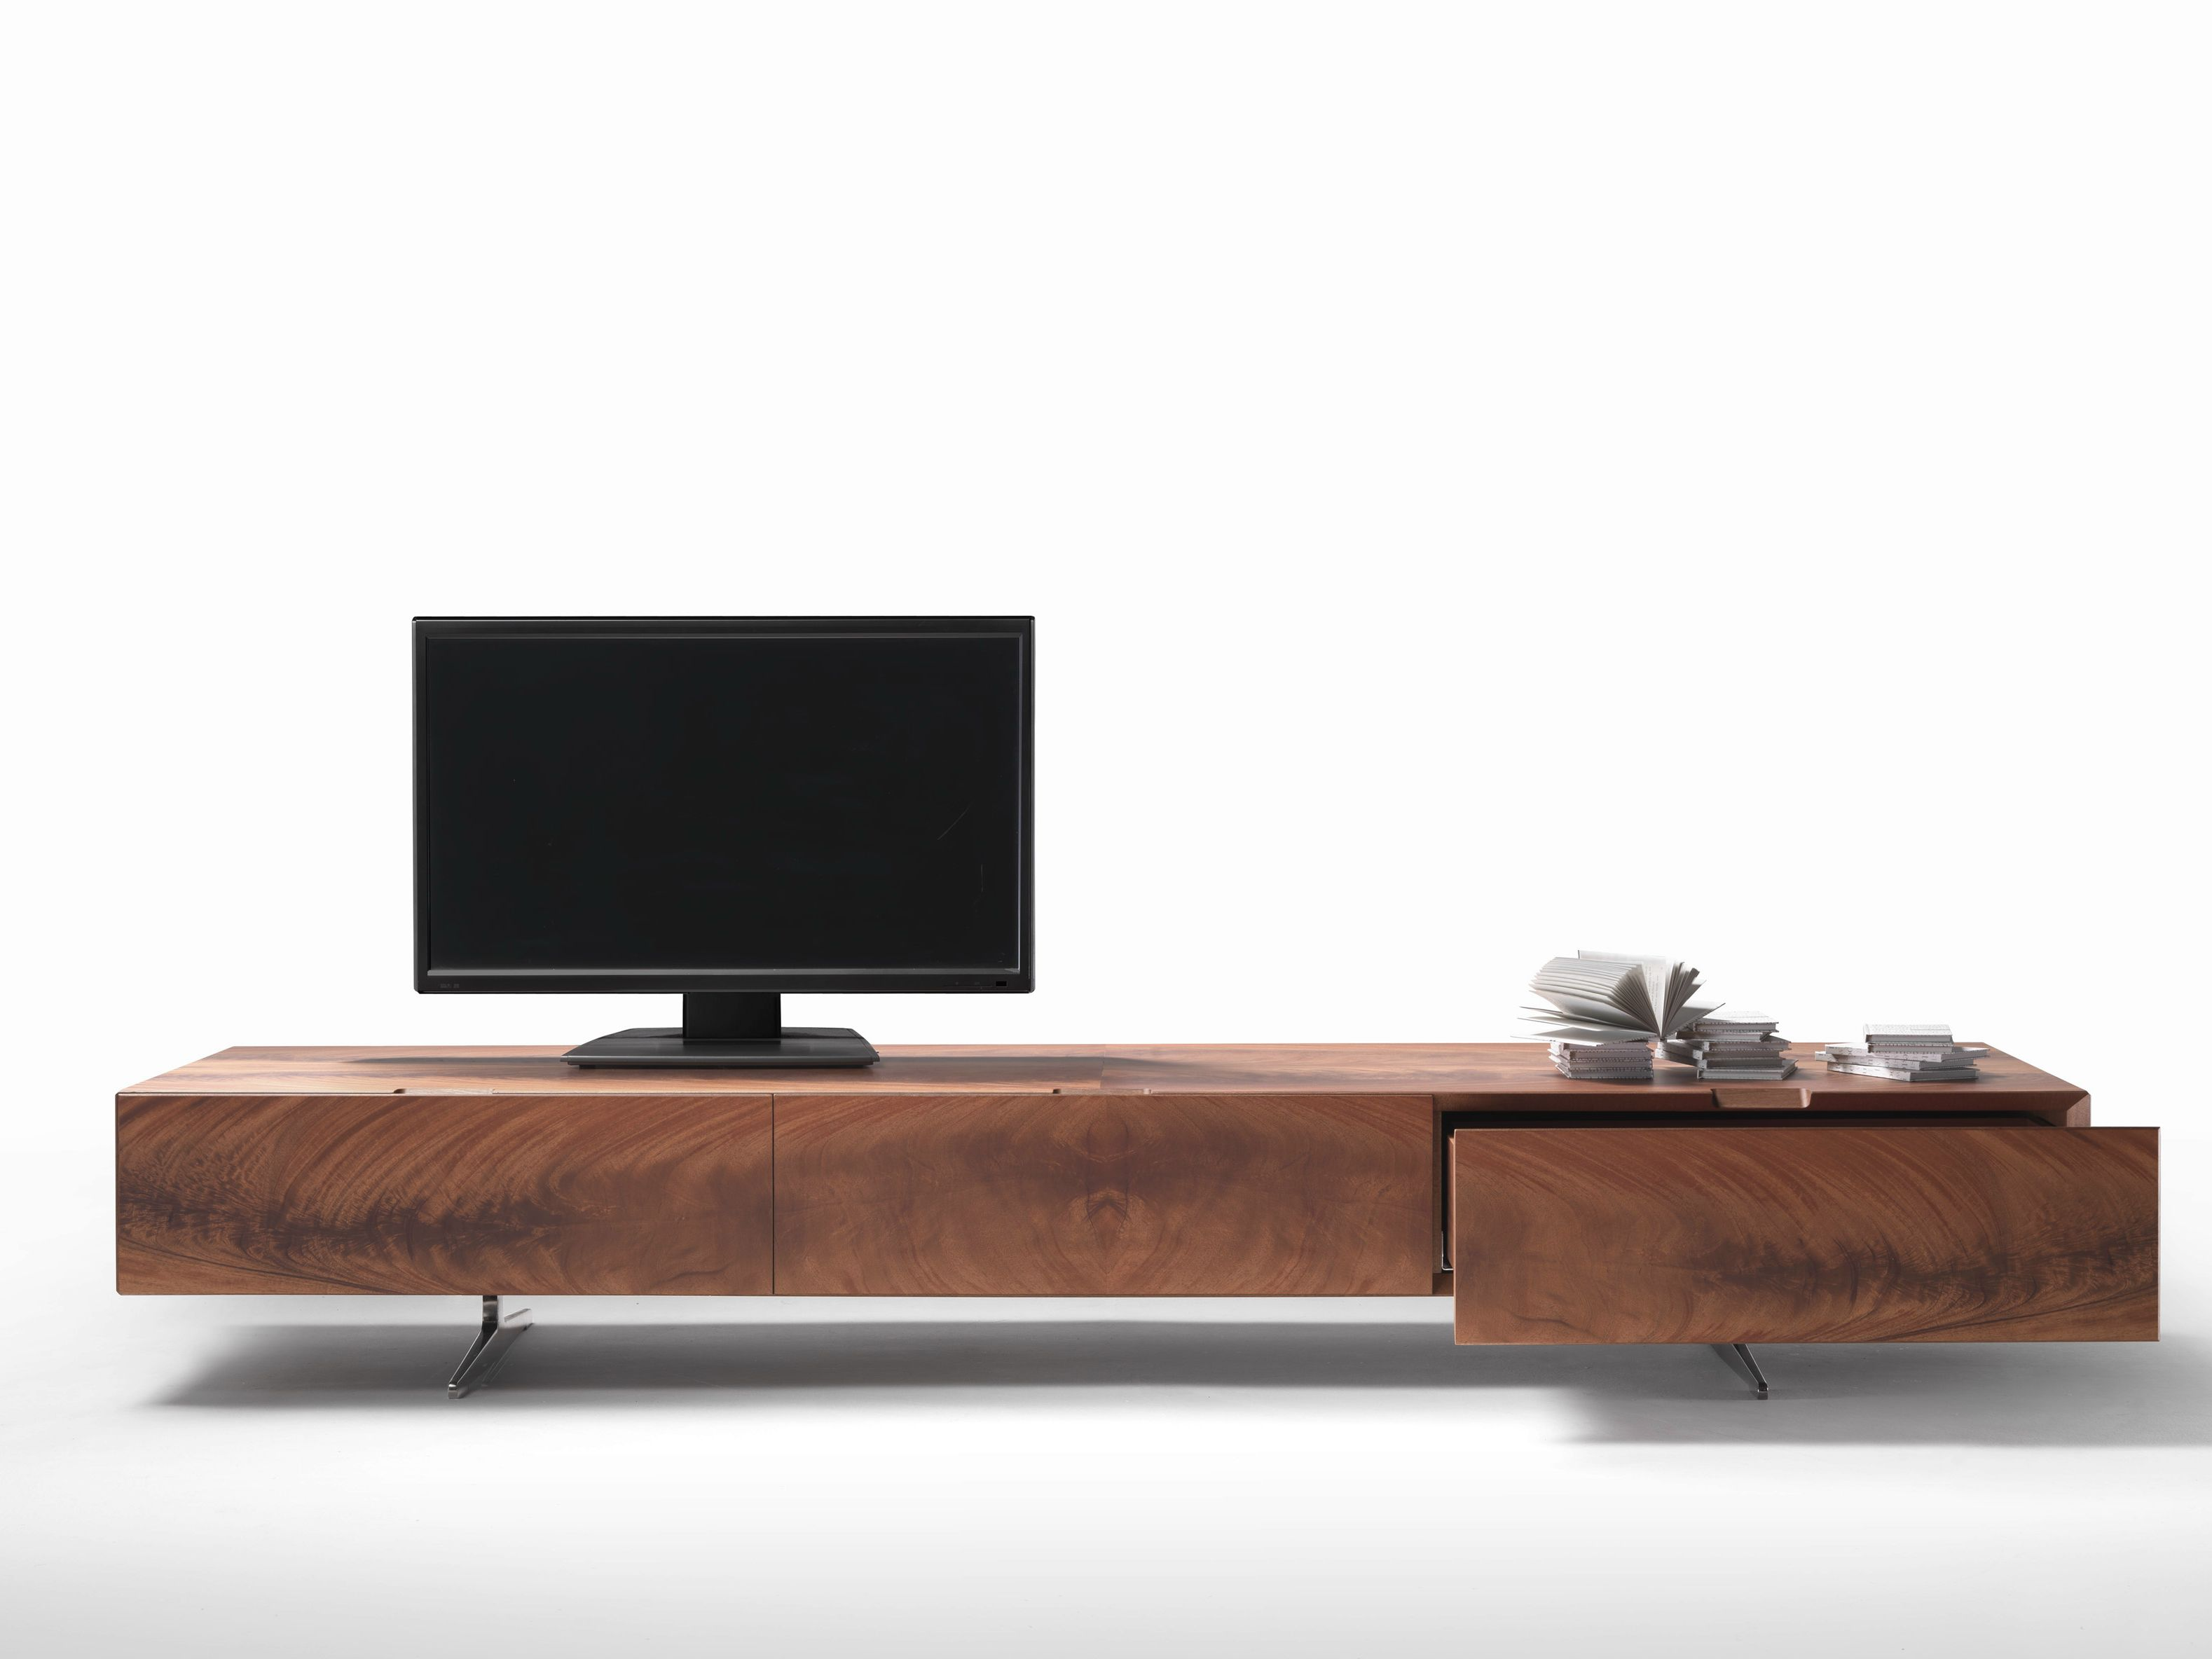 Tv rack holz  TV-Lowboard aus Holz Kollektion Piuma by FLEXFORM | Design Antonio ...